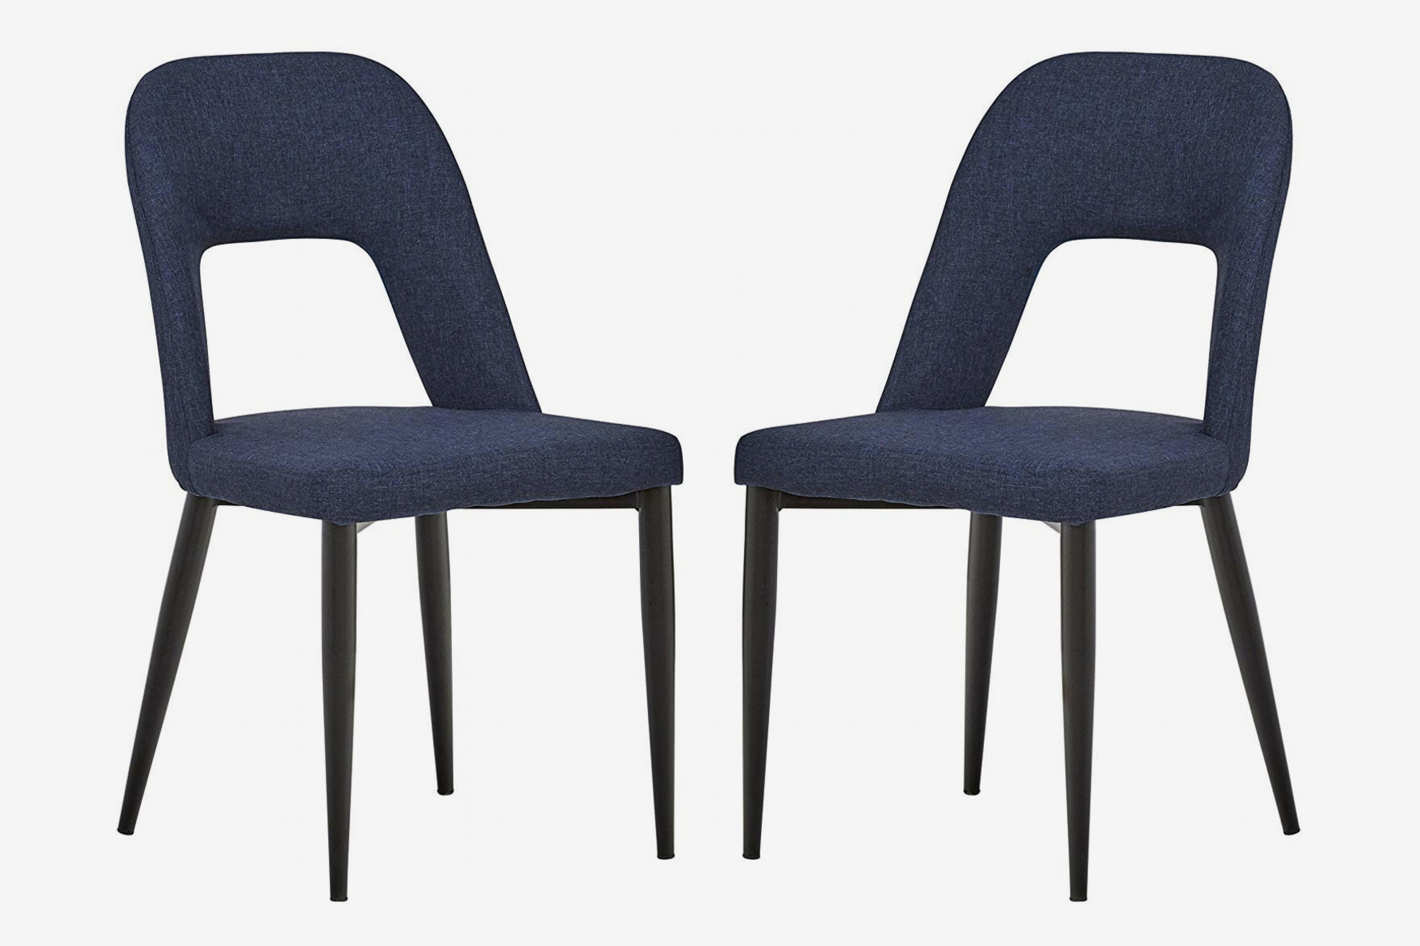 Rivet Florence Mid-Century Wide Open-Back Accent Dining Chairs (Set of 2)